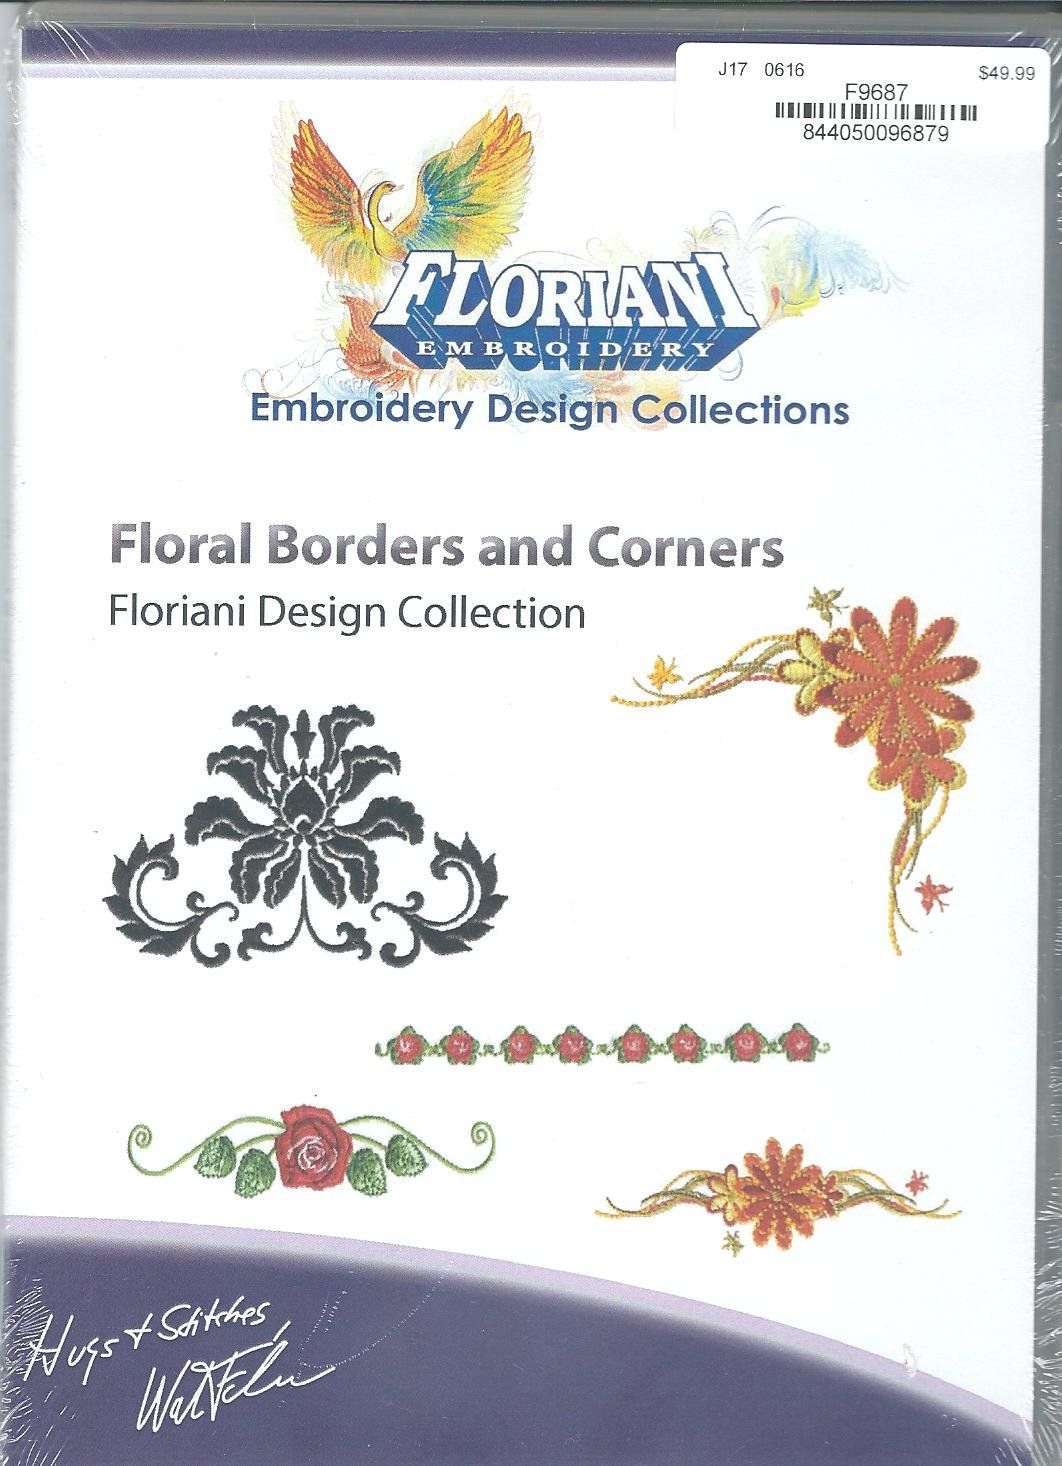 Floriani Embroidery Design Collection Floral Borders and Corners